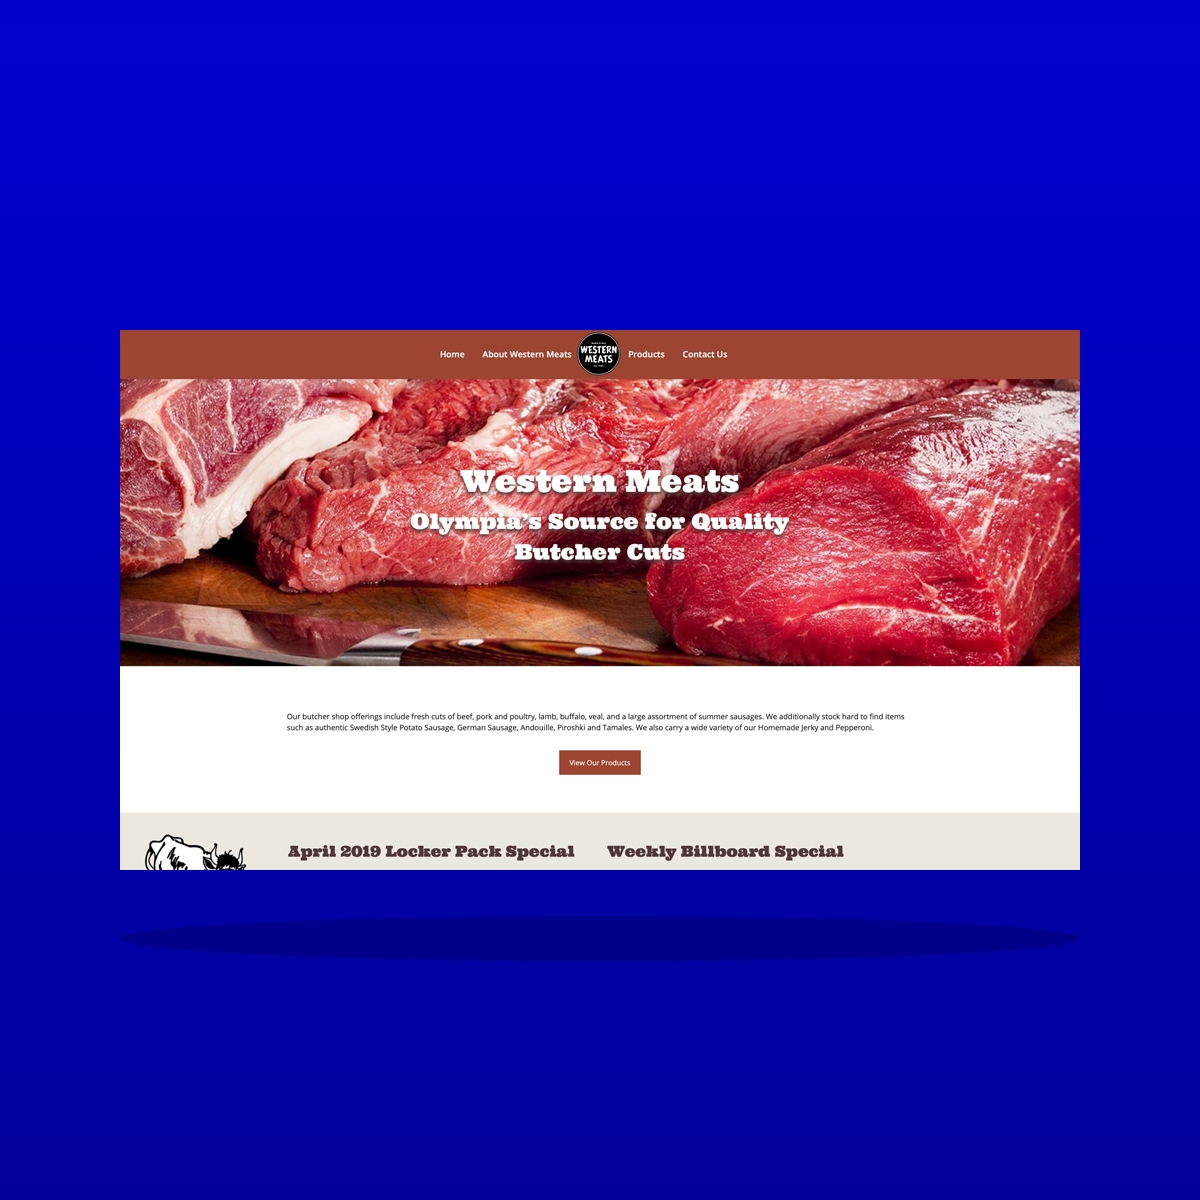 Western Meats (Tumwater, WA) website design by Clarity